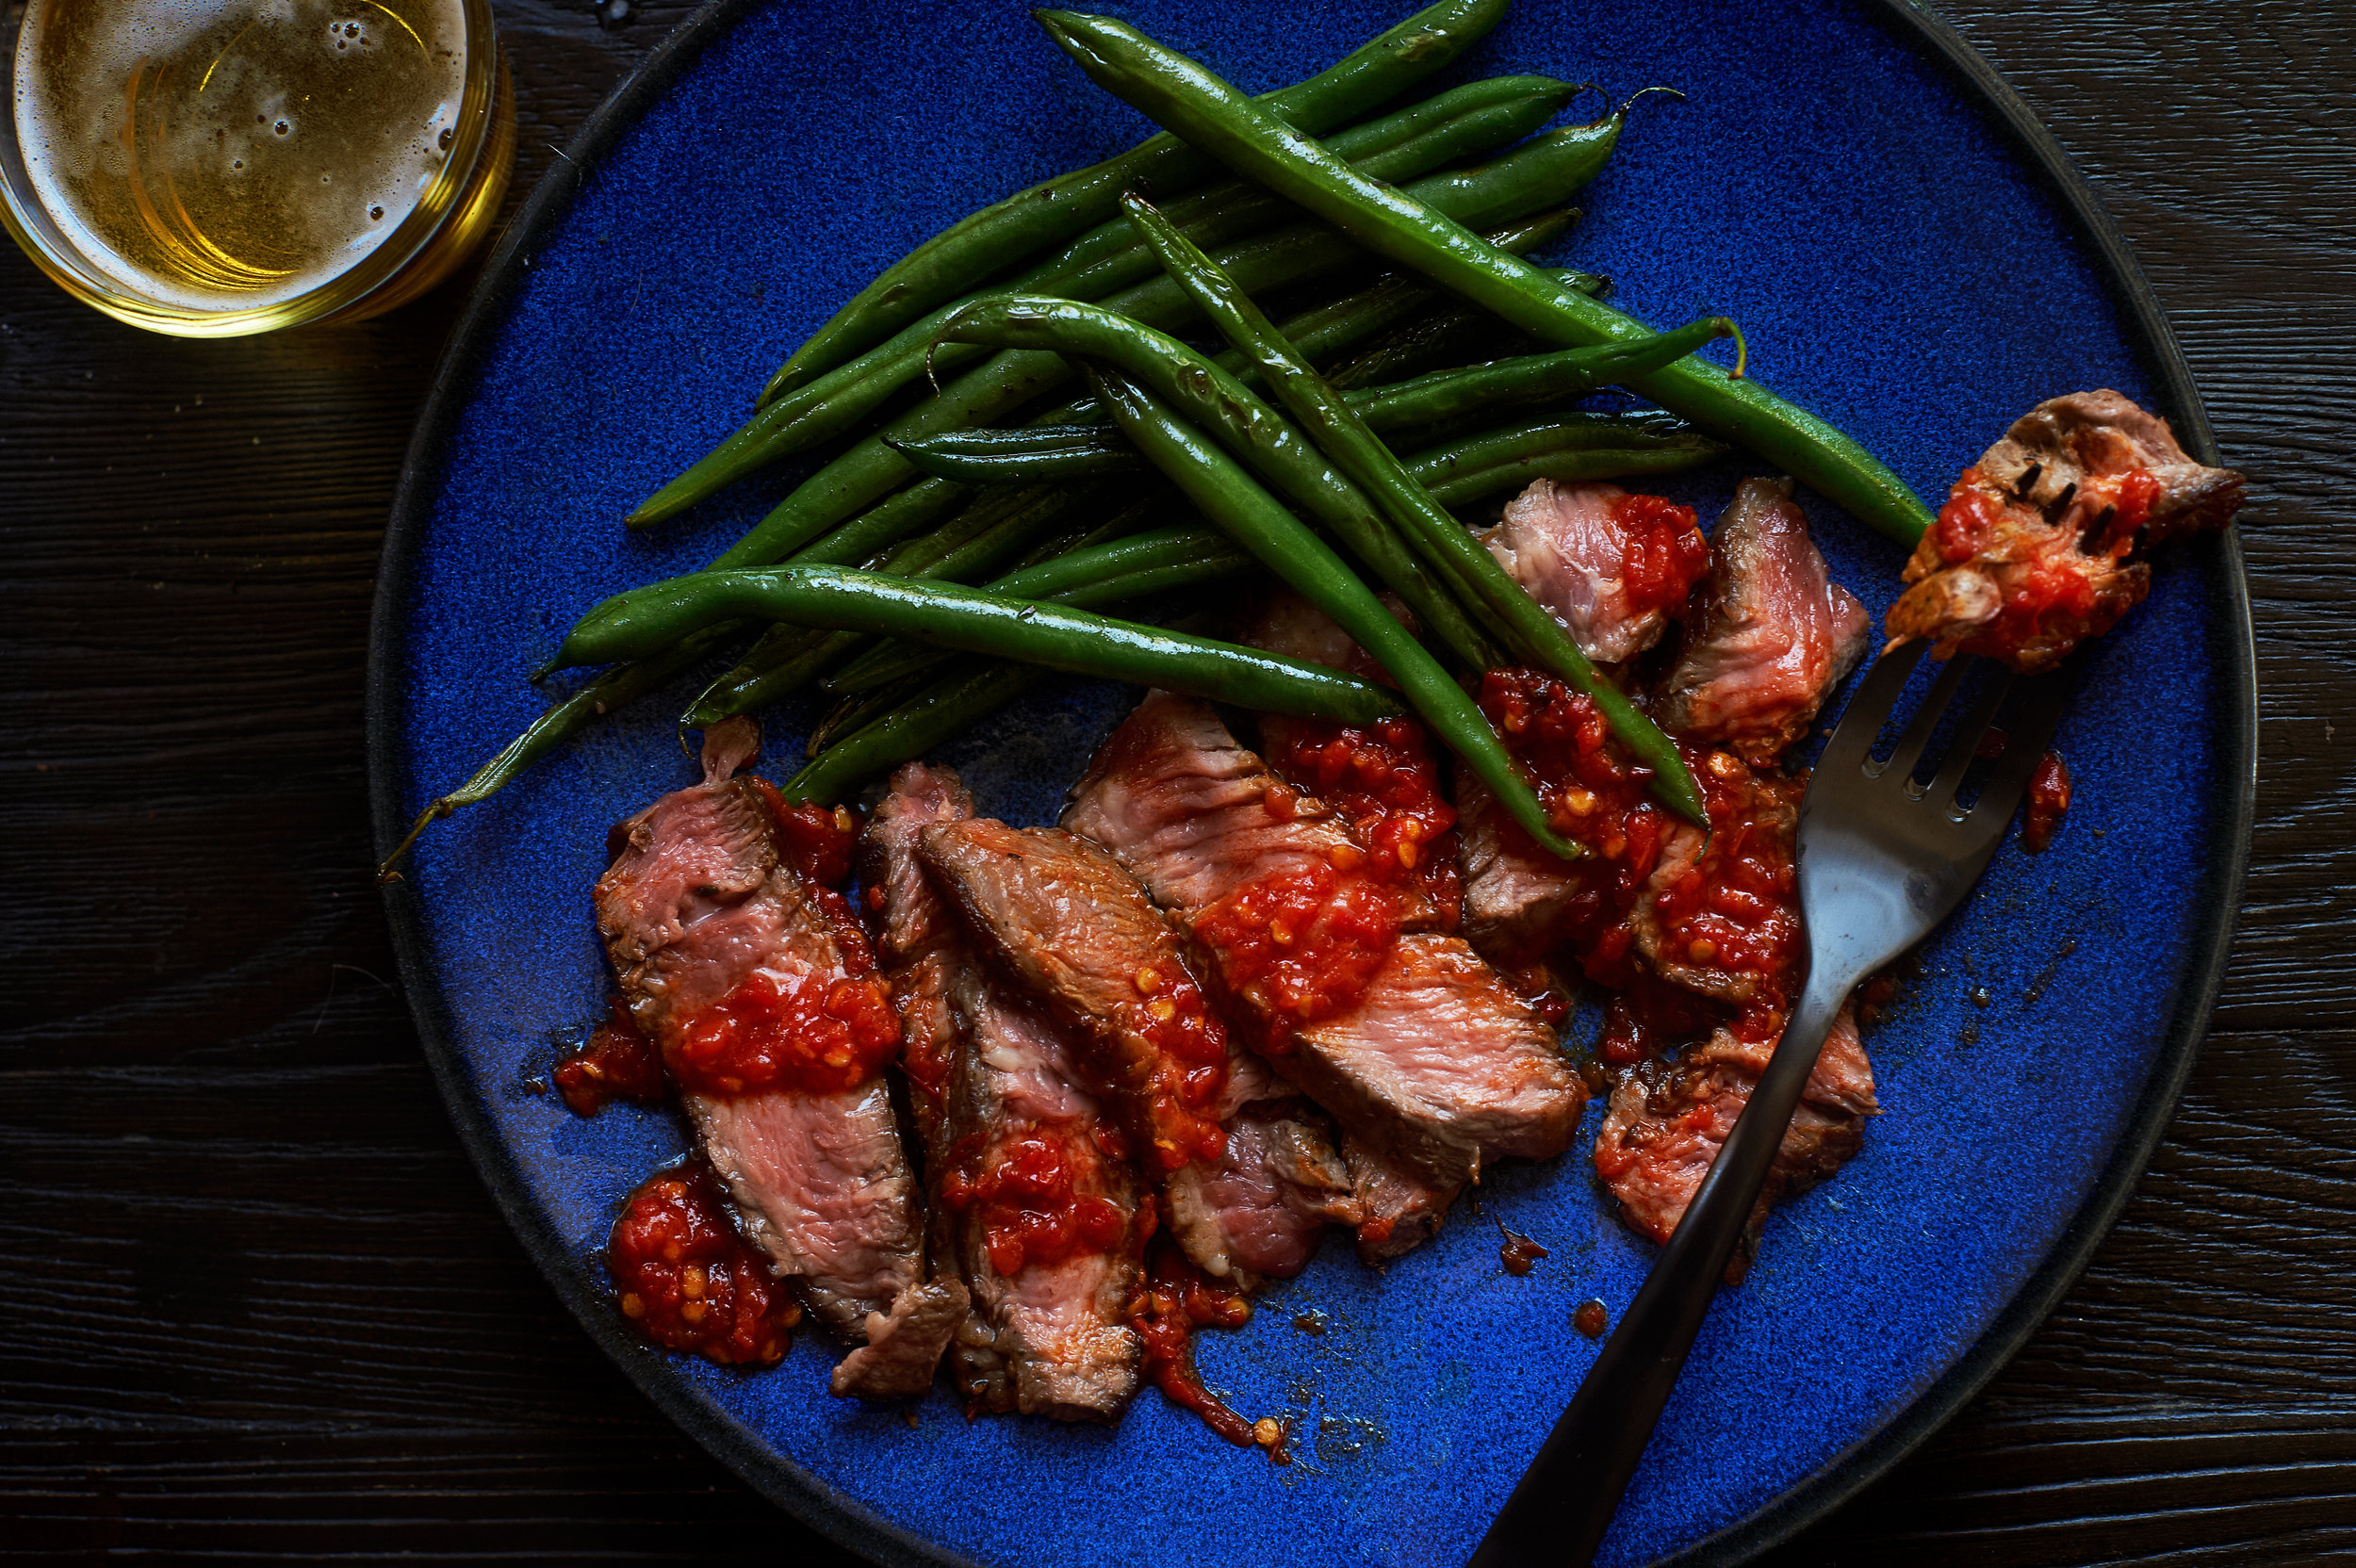 """Marinated Steaks : we bathe select cuts of steak, like skirt steaks, in our """"famous,"""" made-from- scratch Italian Style marinate with lemon, wine, oil & spices, which we love pairing with a luscious Burgundy after searing on the grill."""